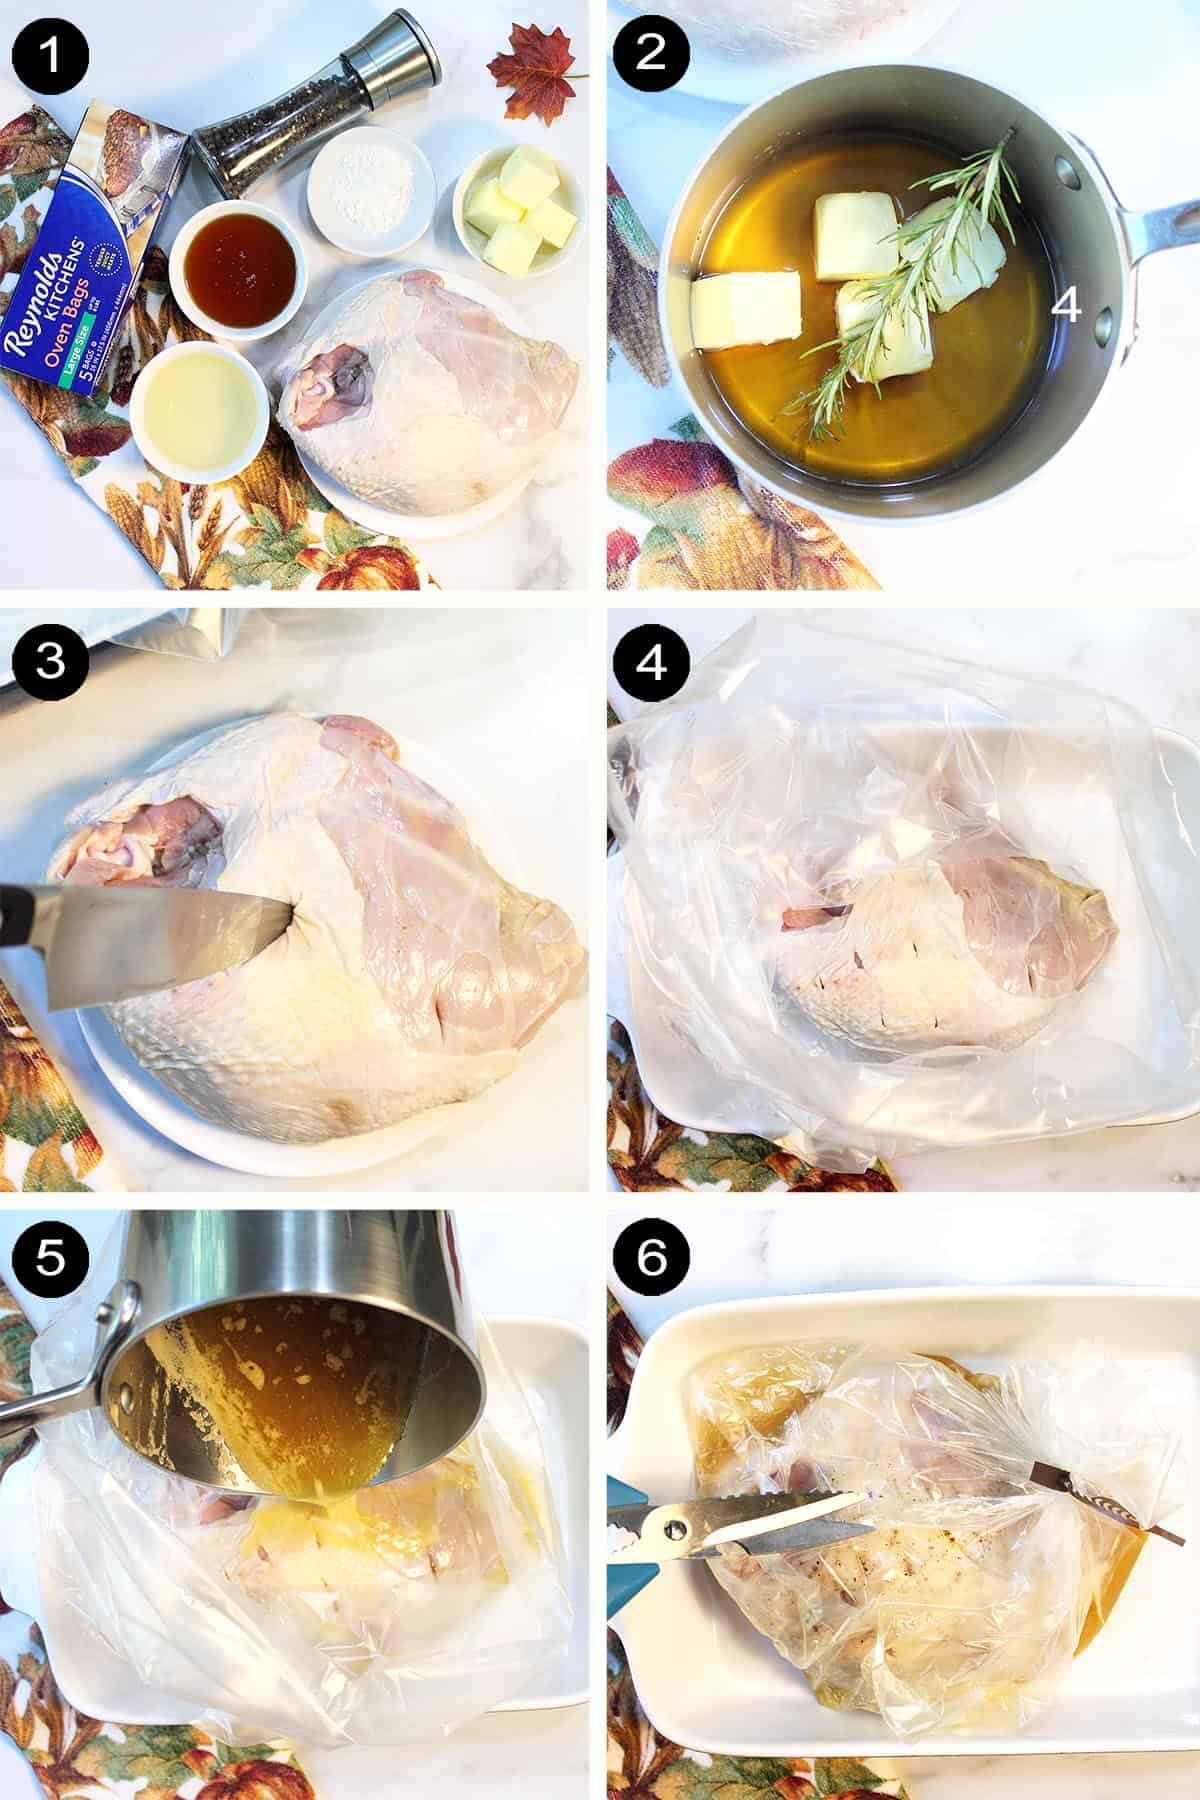 Steps to make honey marinade and prepping breast.